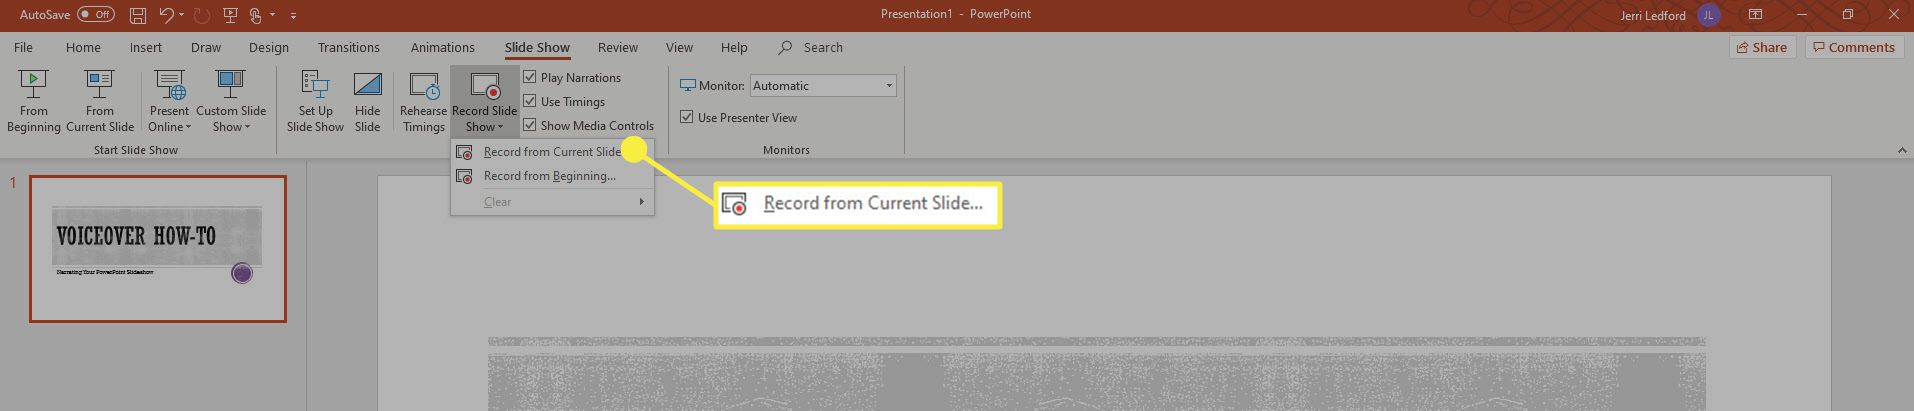 A screenshot showing where to find the recording controls to voiceover an entire presentation